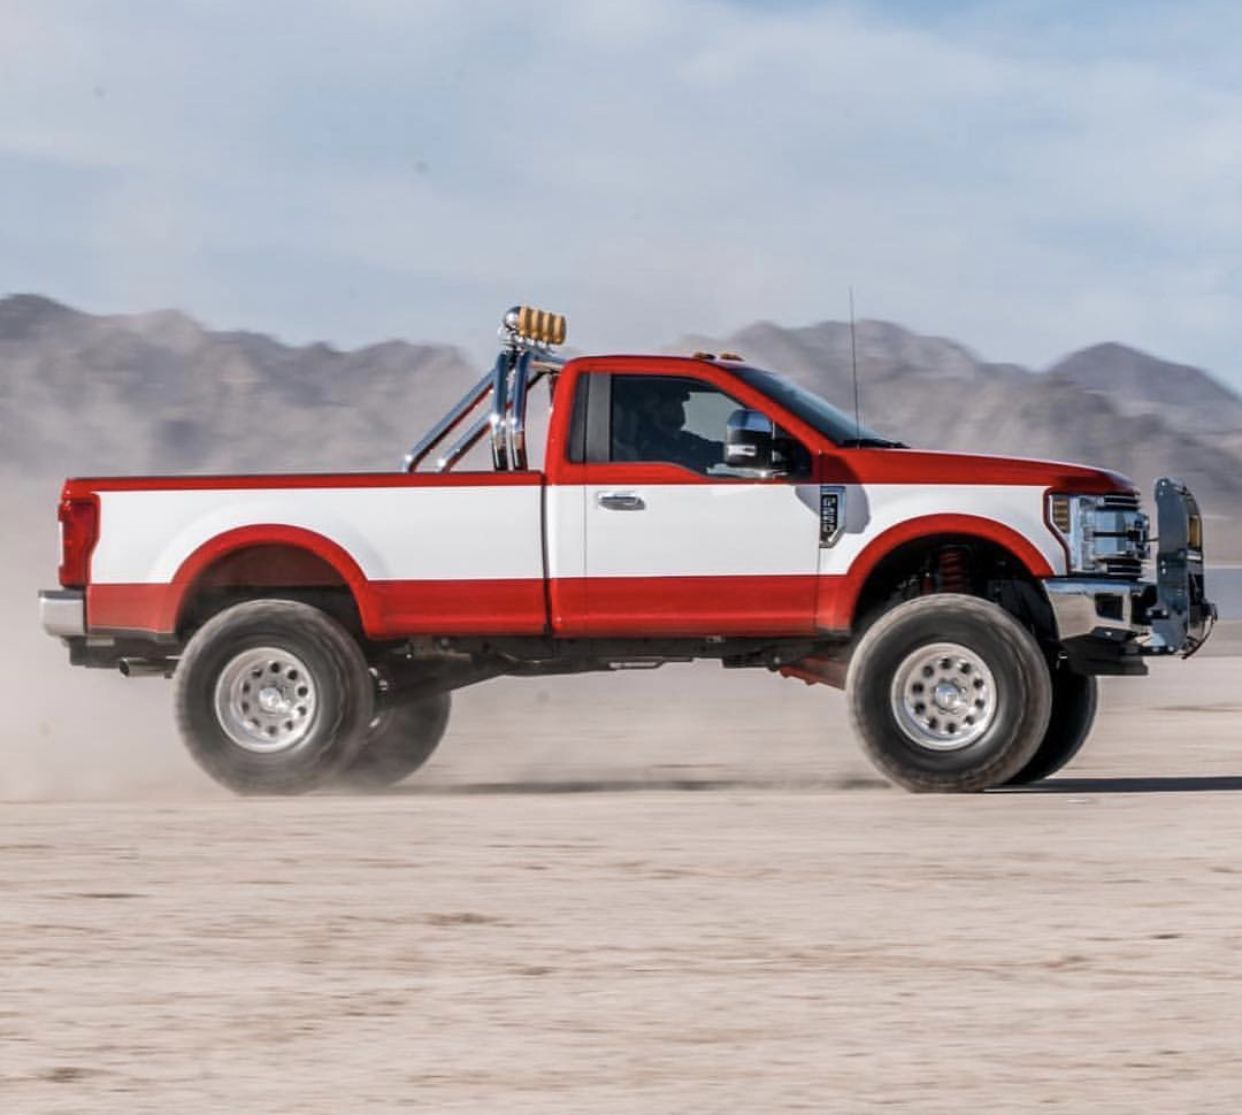 Retro Paint Job In New Ford Truck With Images Ford Trucks New